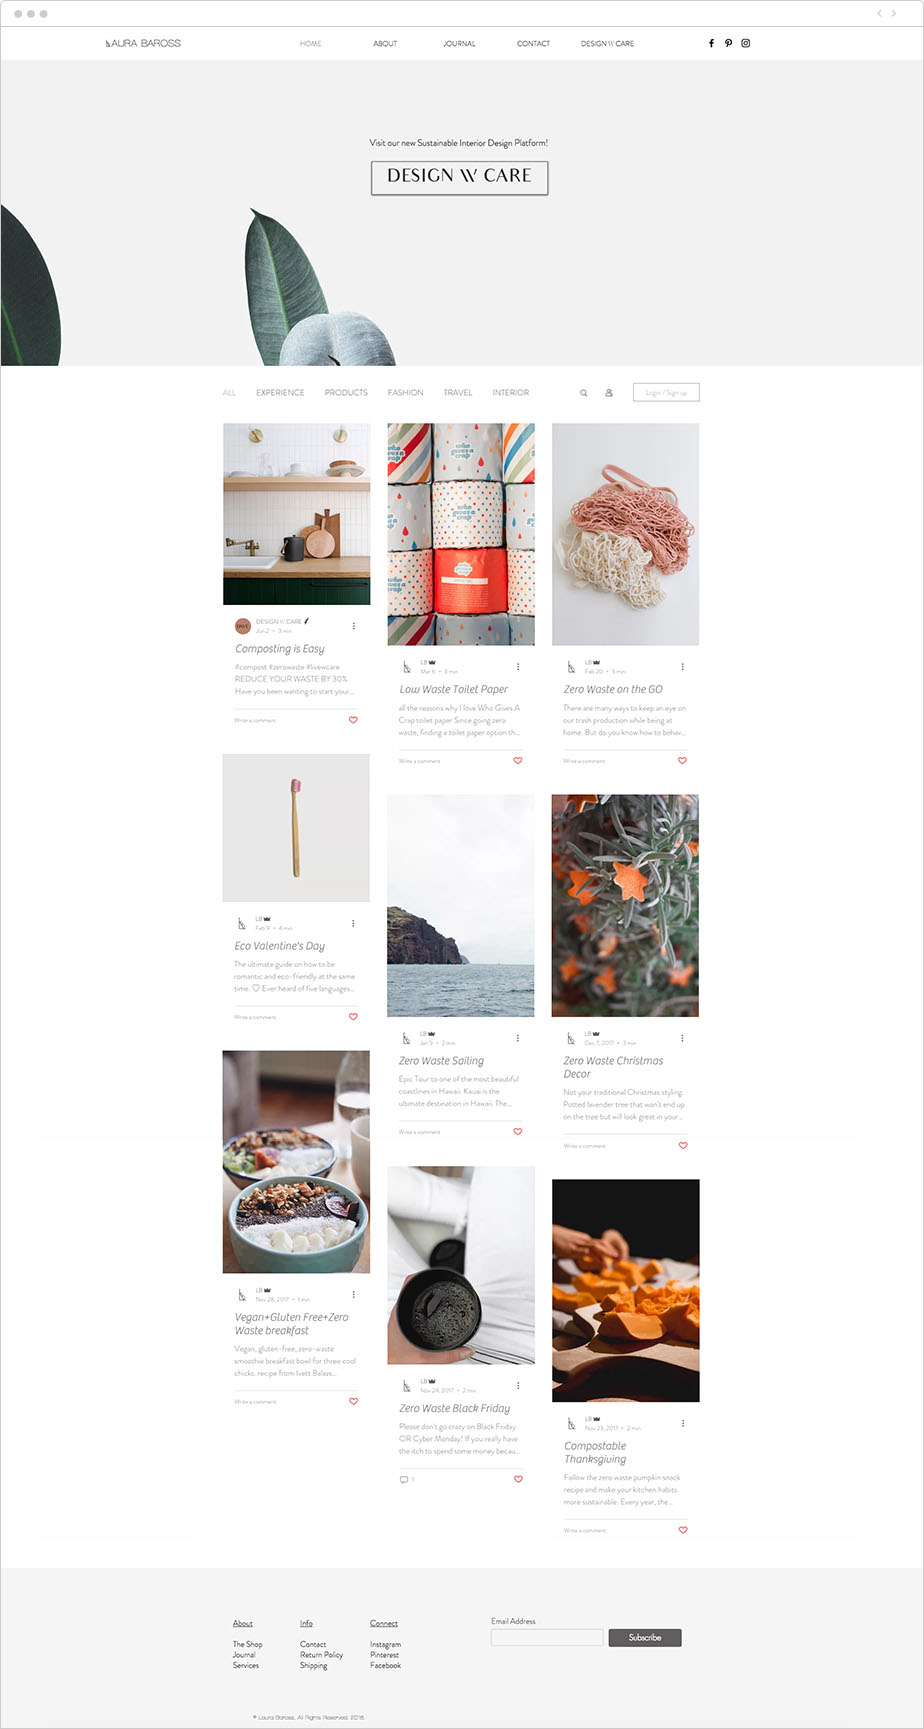 10 blog examples with design wisdom to learn from